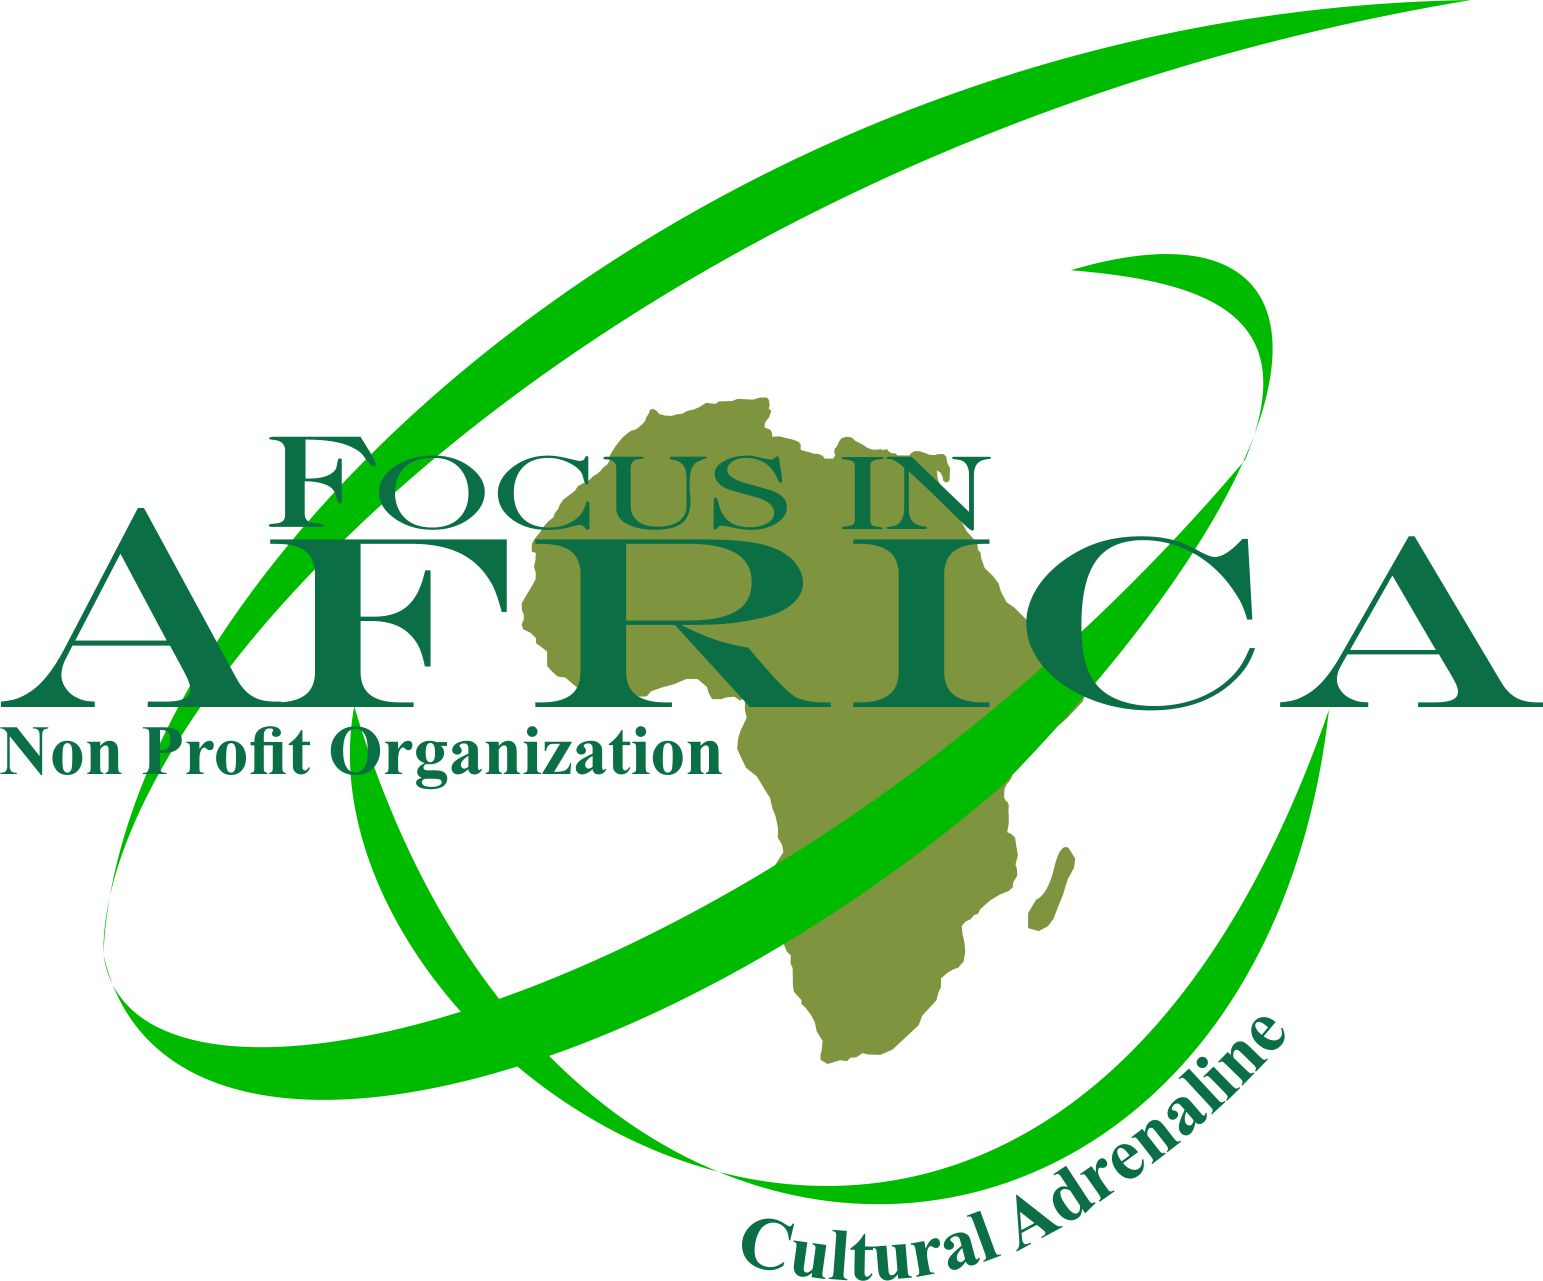 Focus in Africa: HIV/AIDS Prevention Project in Tanzania